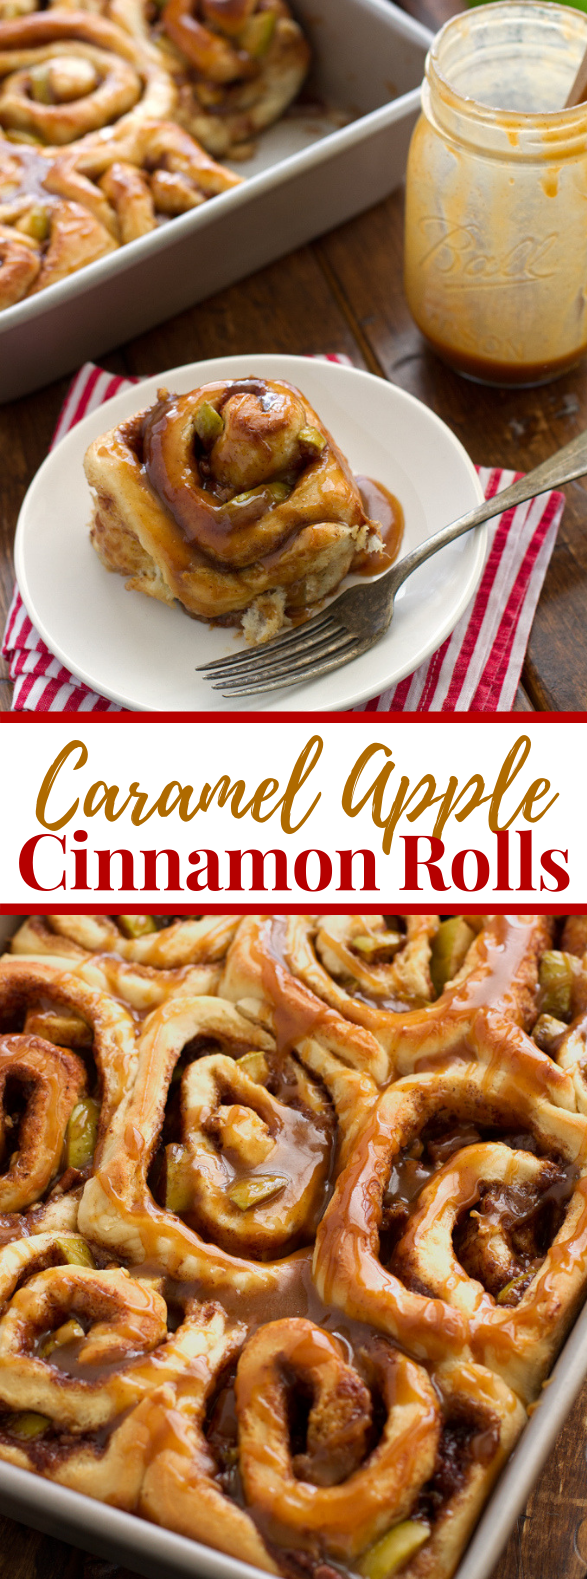 CARAMEL APPLE CINNAMON ROLLS #desserts #fall